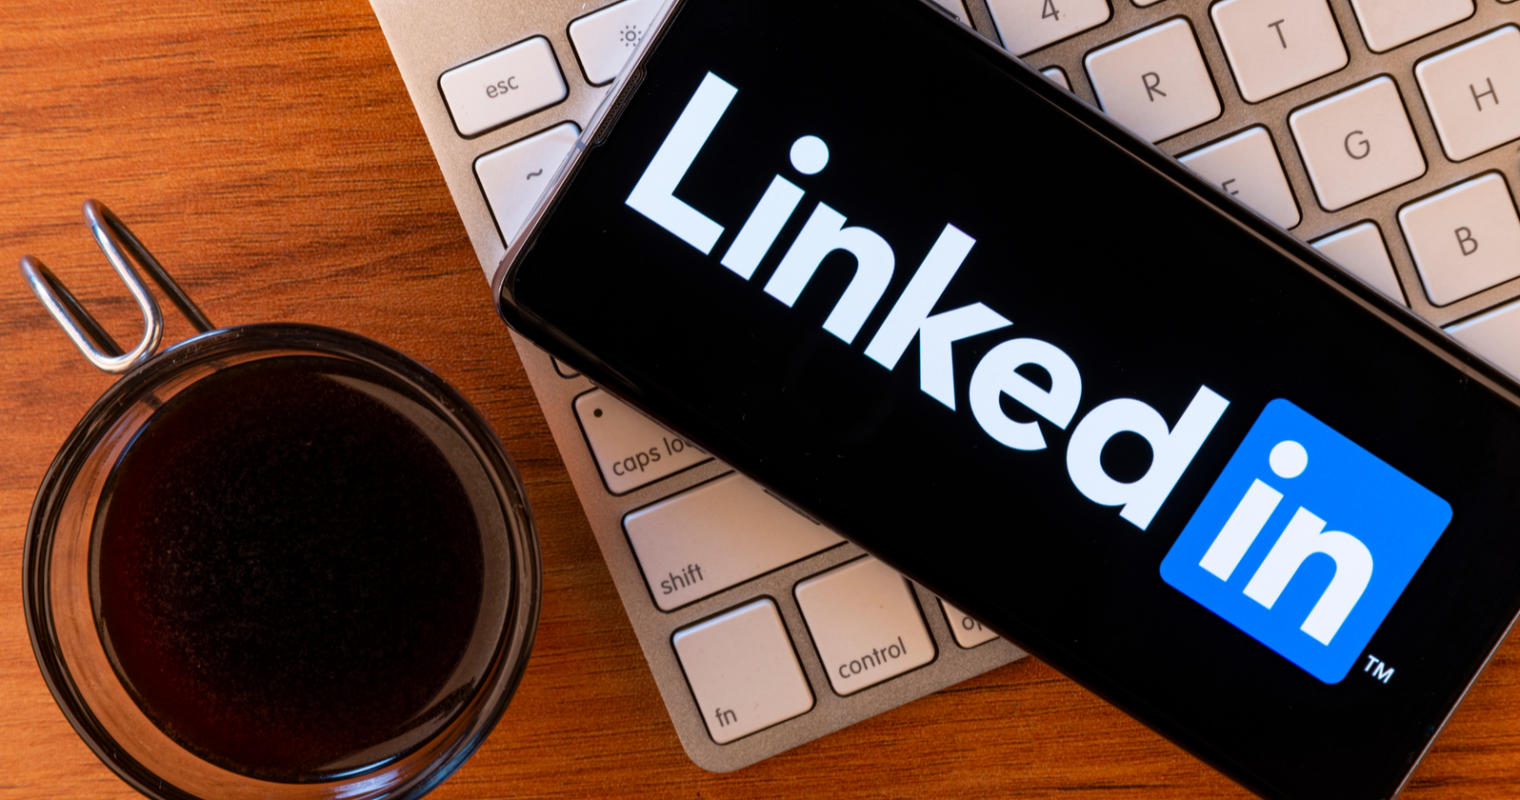 LinkedIn Suggests 4 Types of Posts to Share Amid COVID-19 Lockdowns